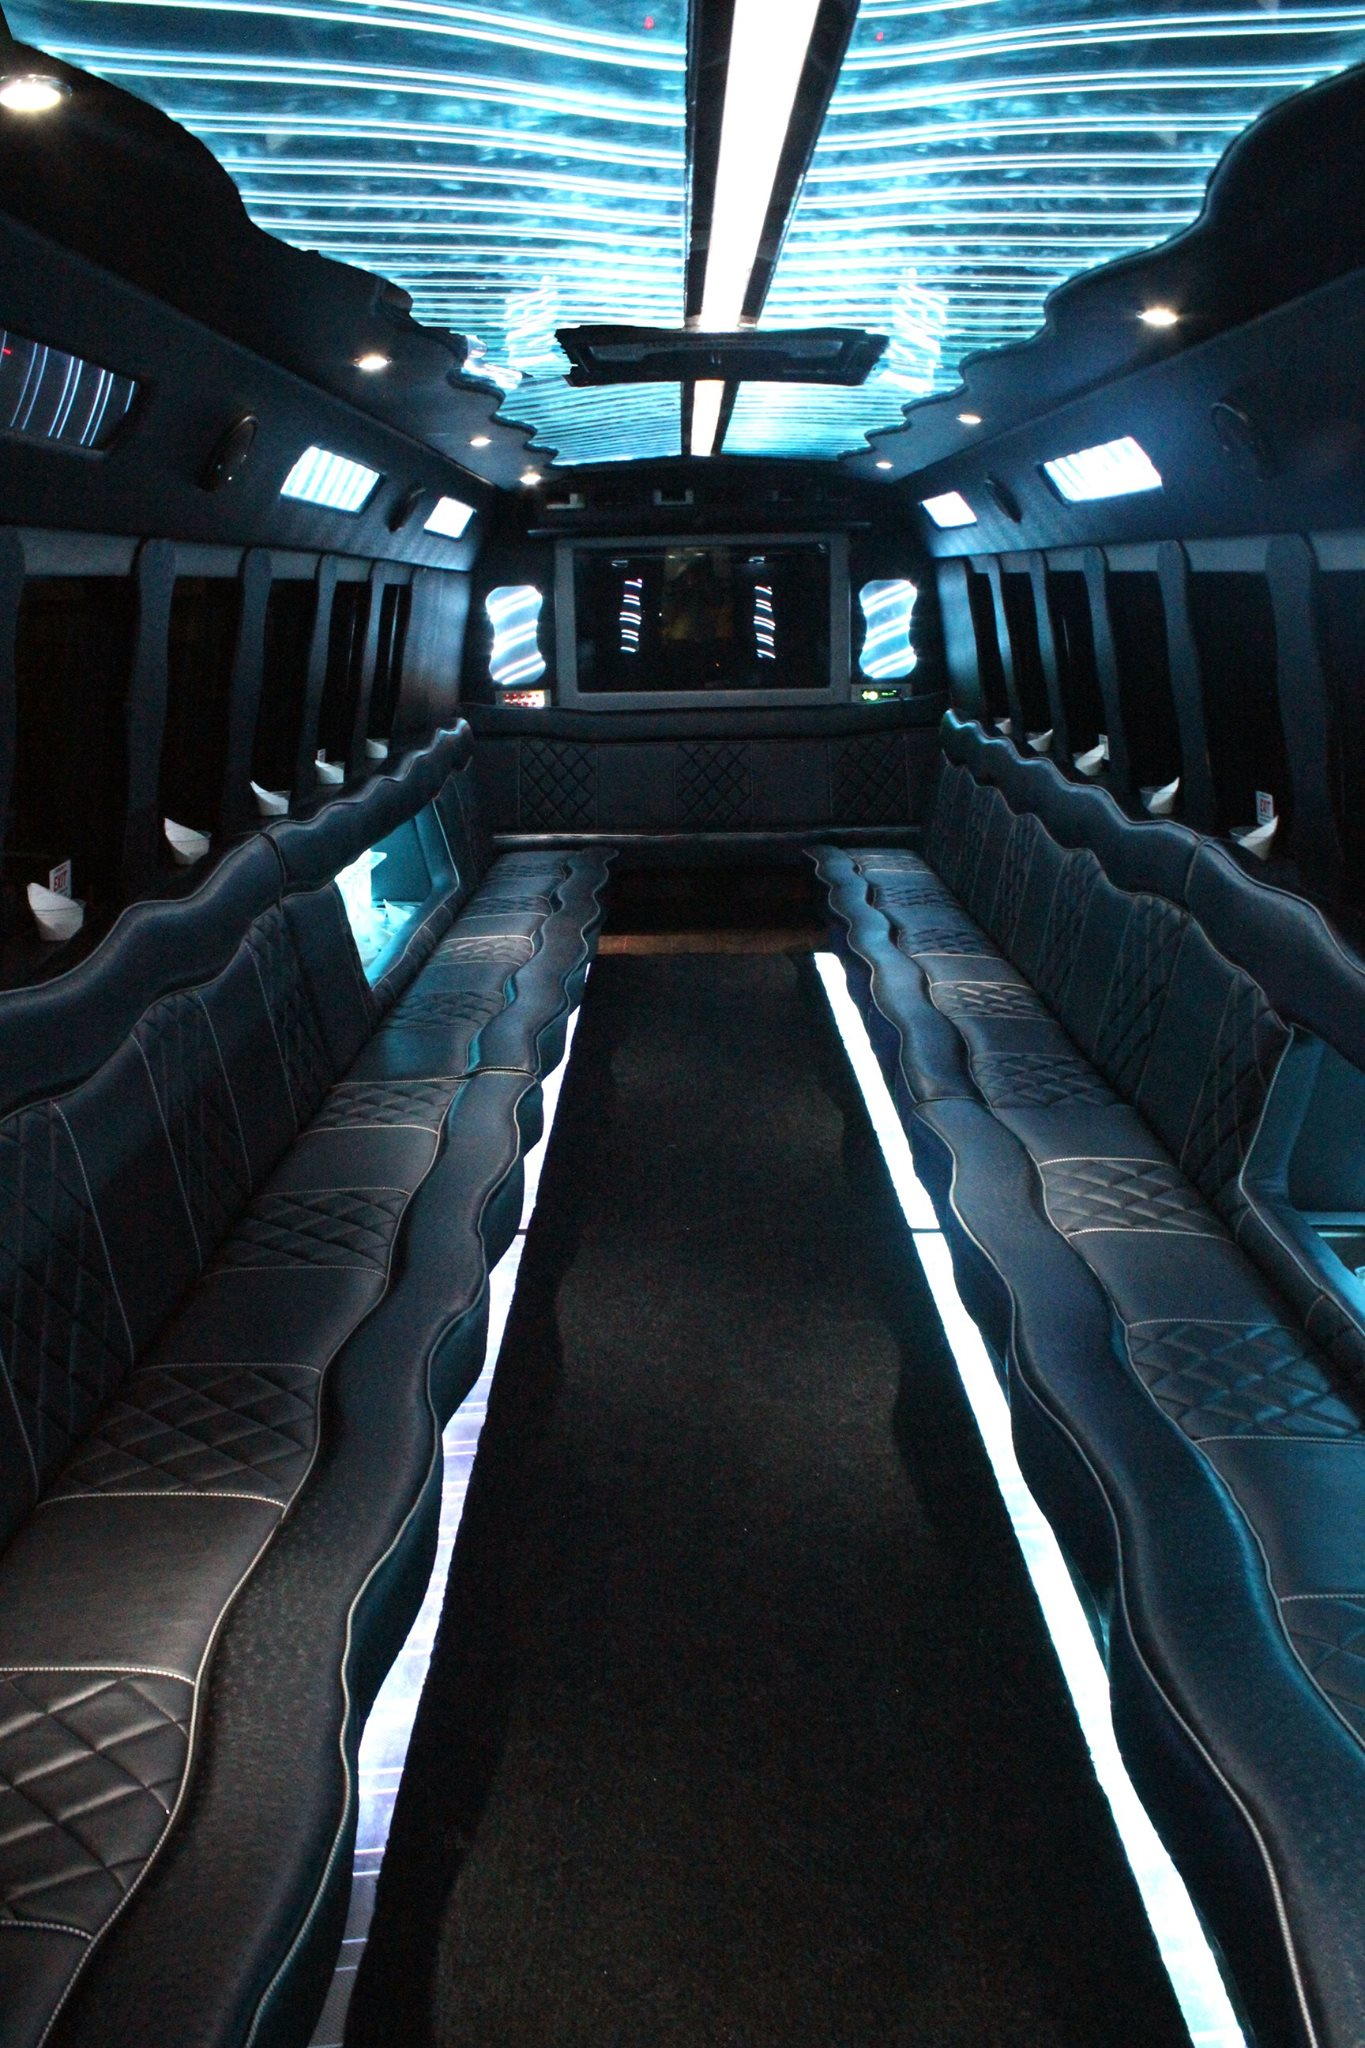 35 Passenger Luxury Limo Bus Interior 2